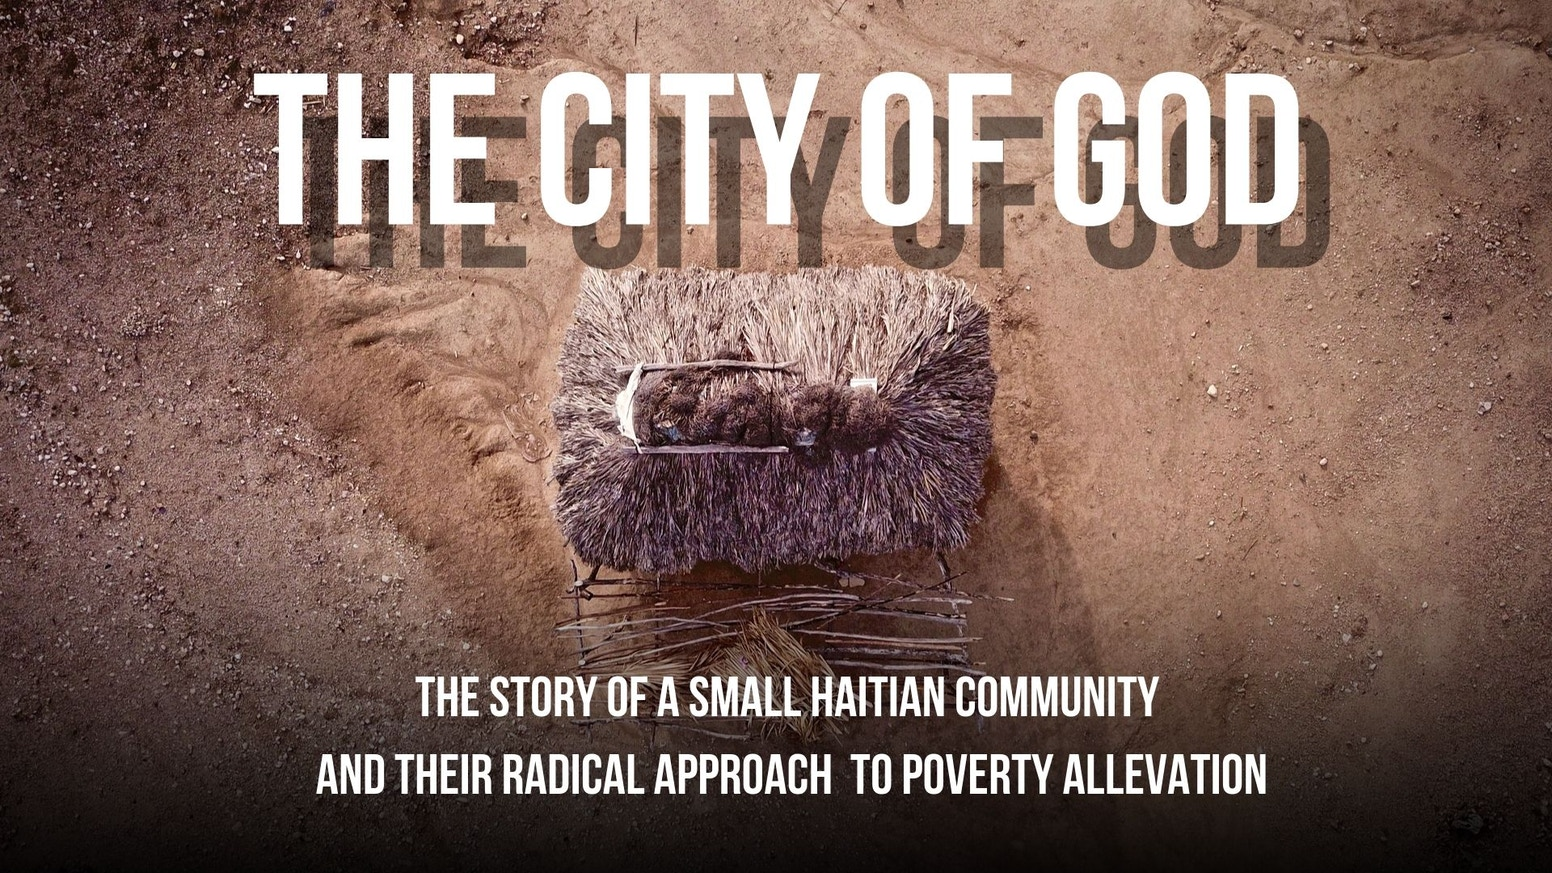 A documentary about a community in Haiti that focuses on the dignity of the people.